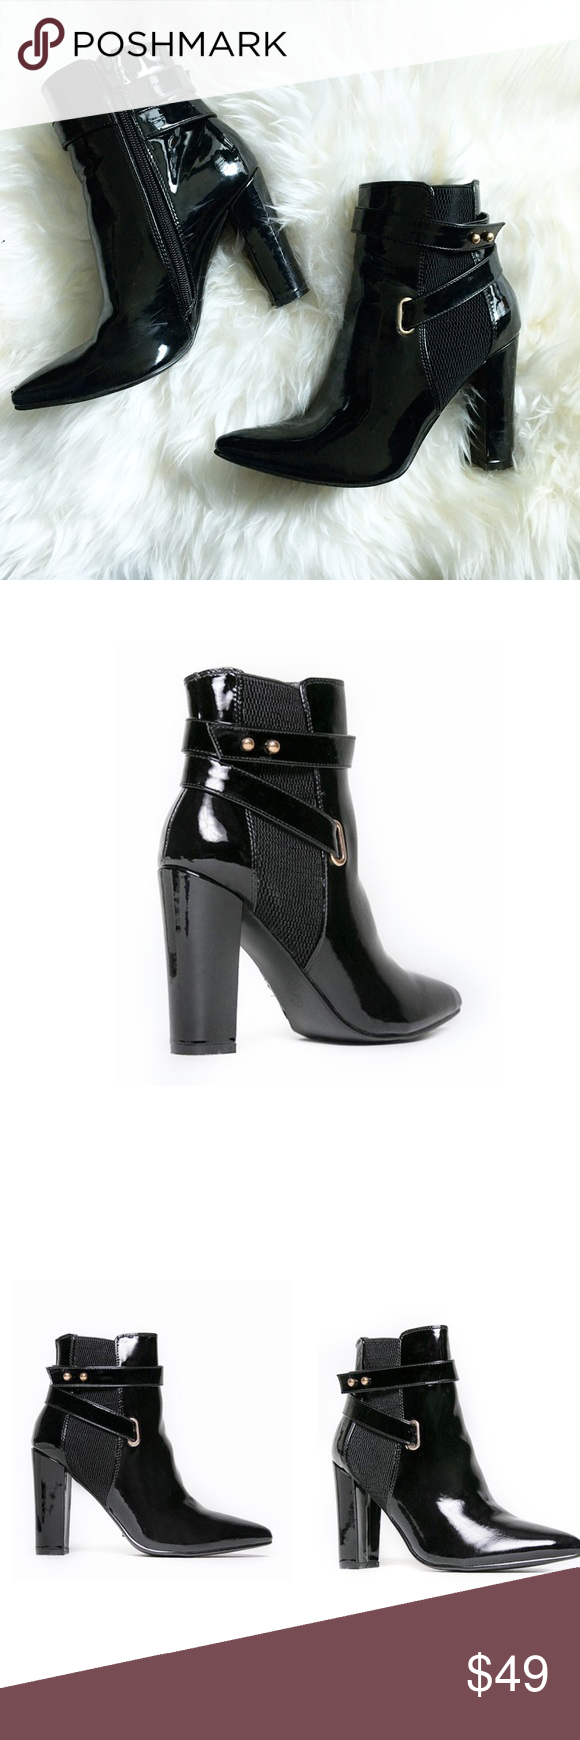 "BLACK PATENT POINTY TOE BOOTIES Patent Finish Pointy Toe Pull-on style Elastic side accents Synthetic upper & sole Runs true to size Approximate measurements: Heel 4.5"", Shaft 8"", Opening Circumference 10.5"" Style Link Miami Shoes Ankle Boots & Booties"